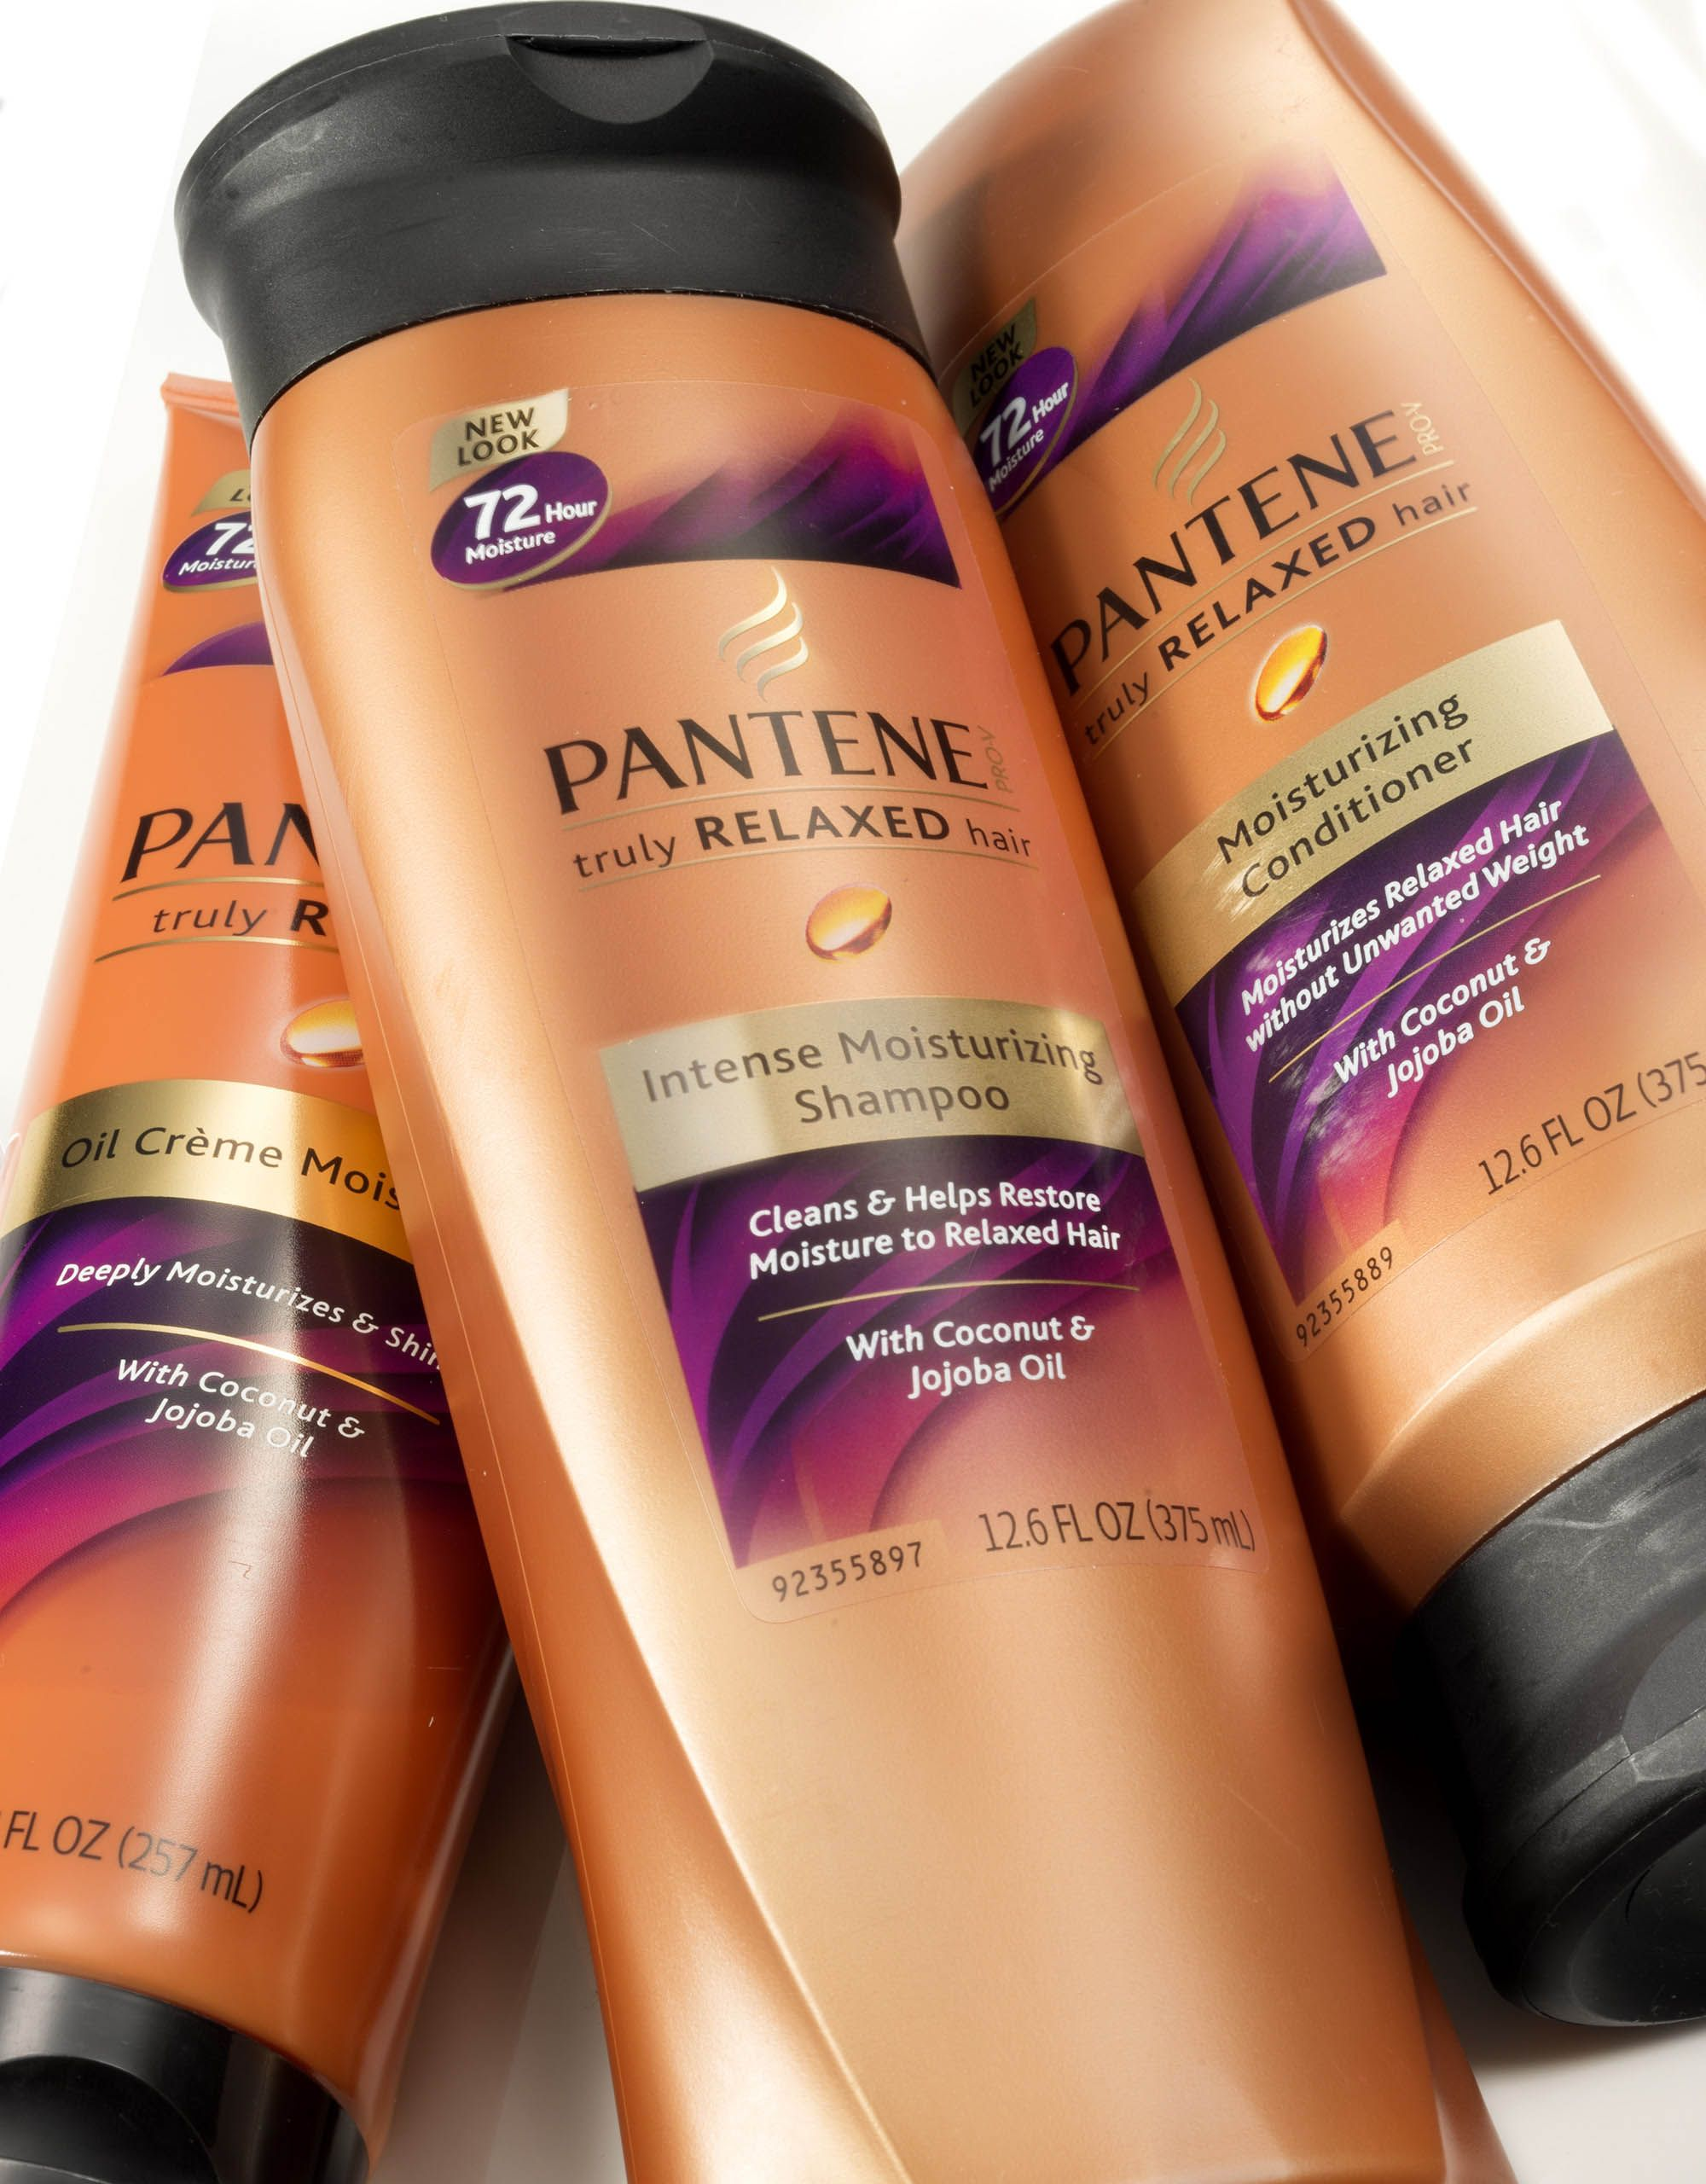 Pantene Intense Moisturizing Shampoo With Coconut Oil Jojoba Oil